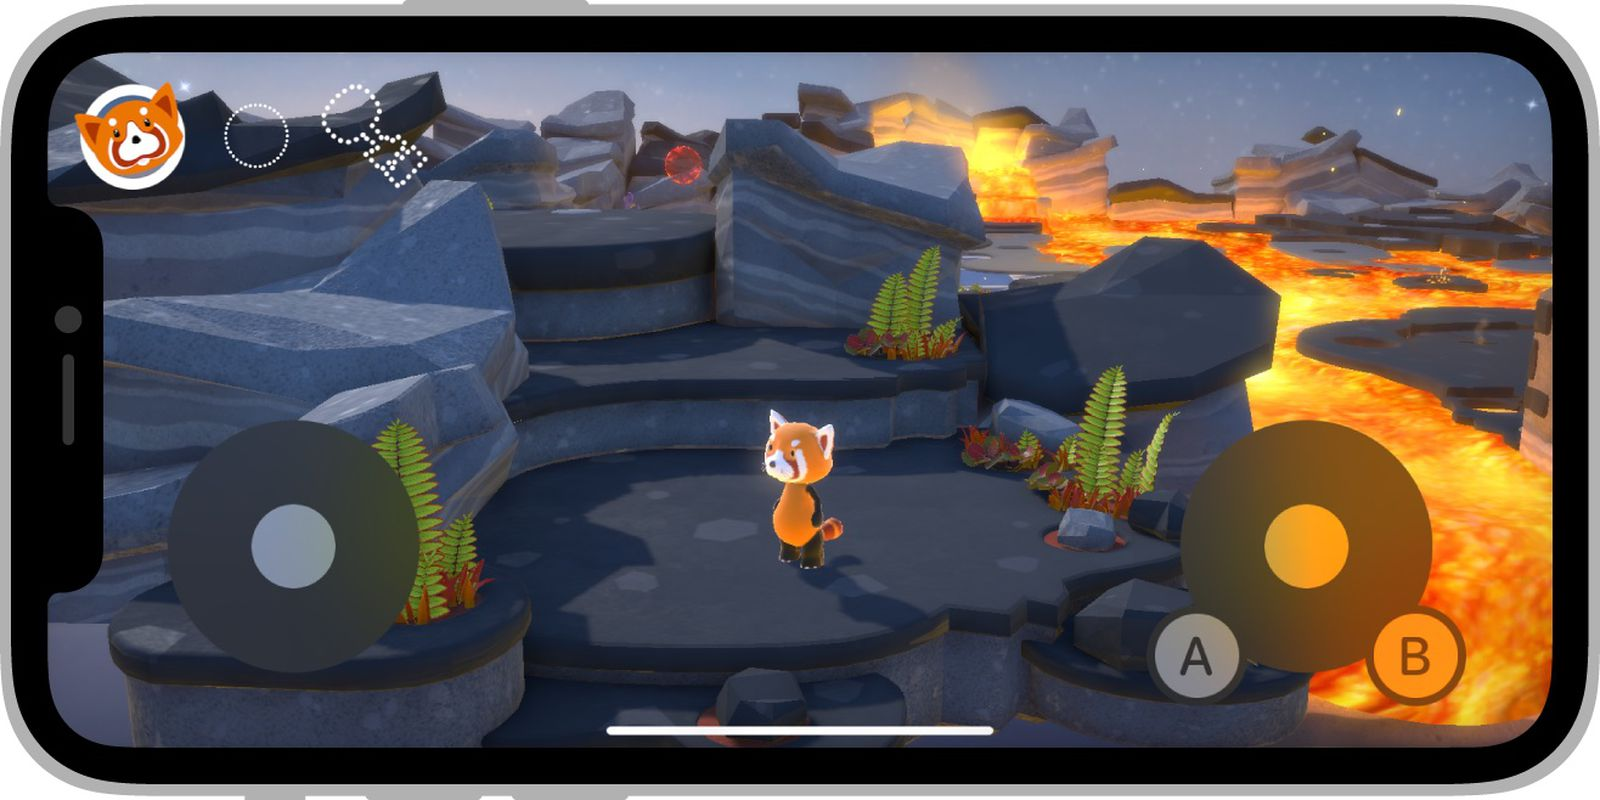 Apple Makes New On-Screen Game Controller Available to Developers on iOS 15 and iPadOS 15